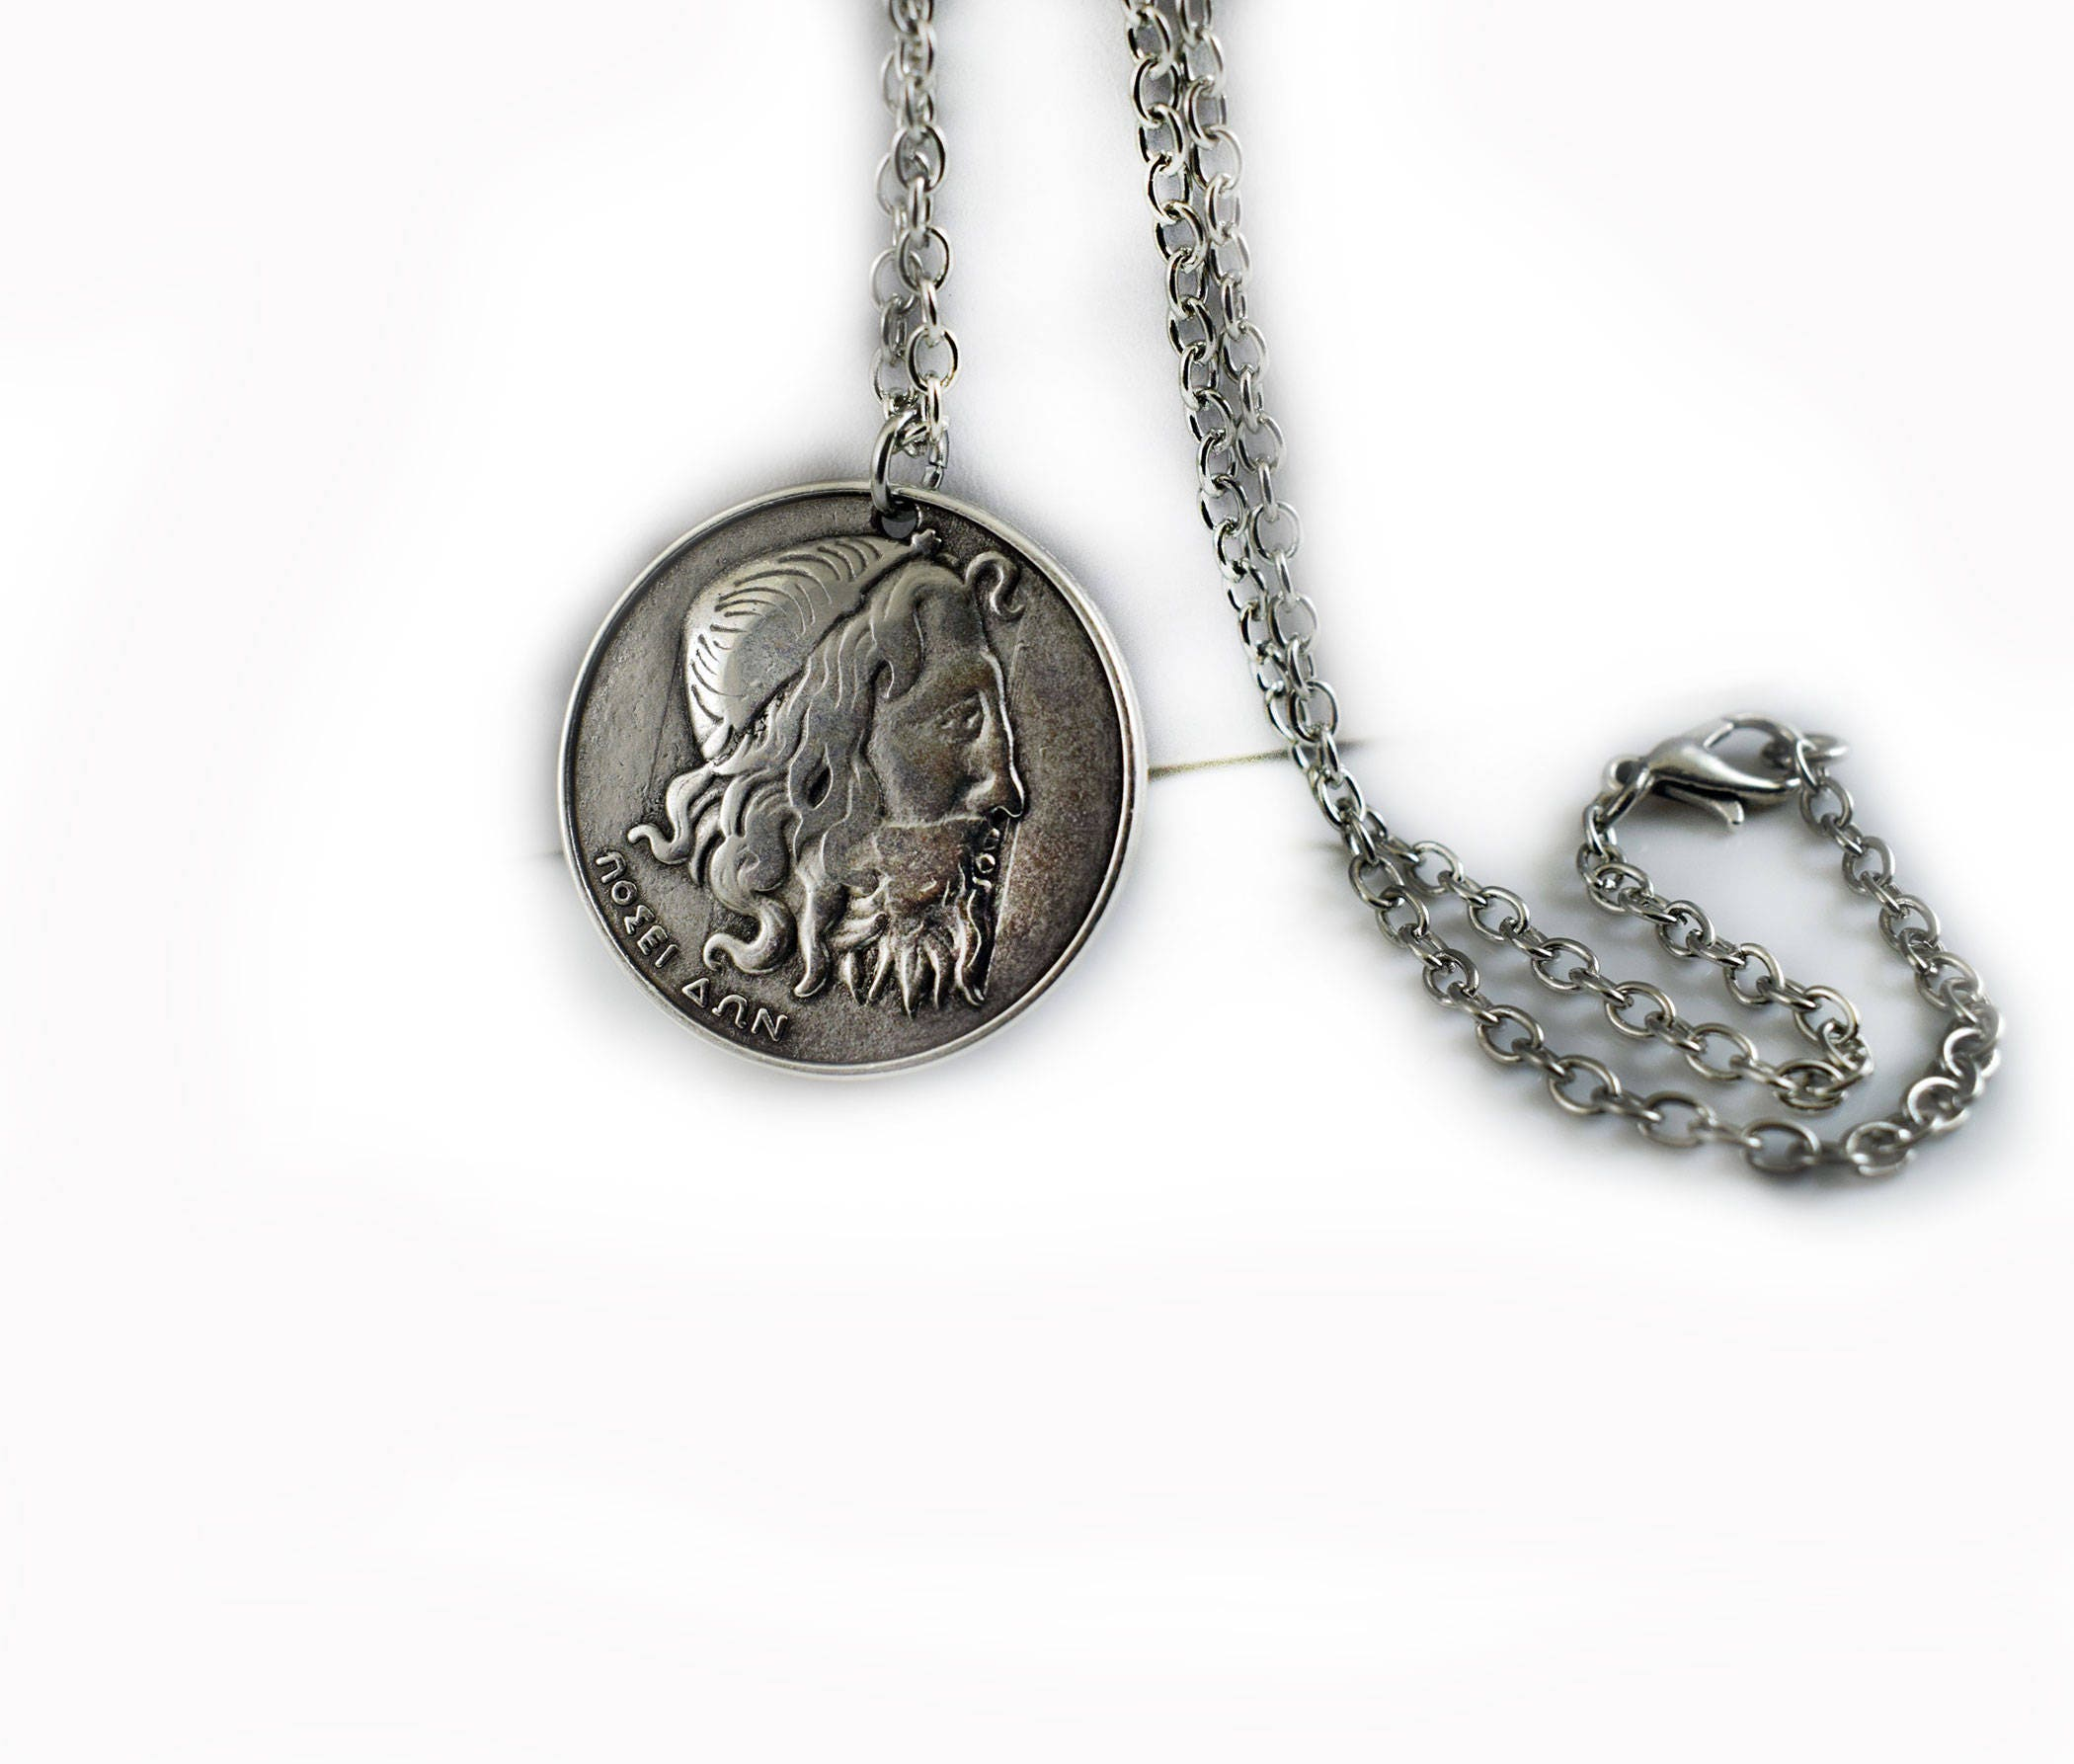 coin culturetaste nike poseidon macedonian silver and at bronze tetradrachm savati zpskmpwvjns pendant